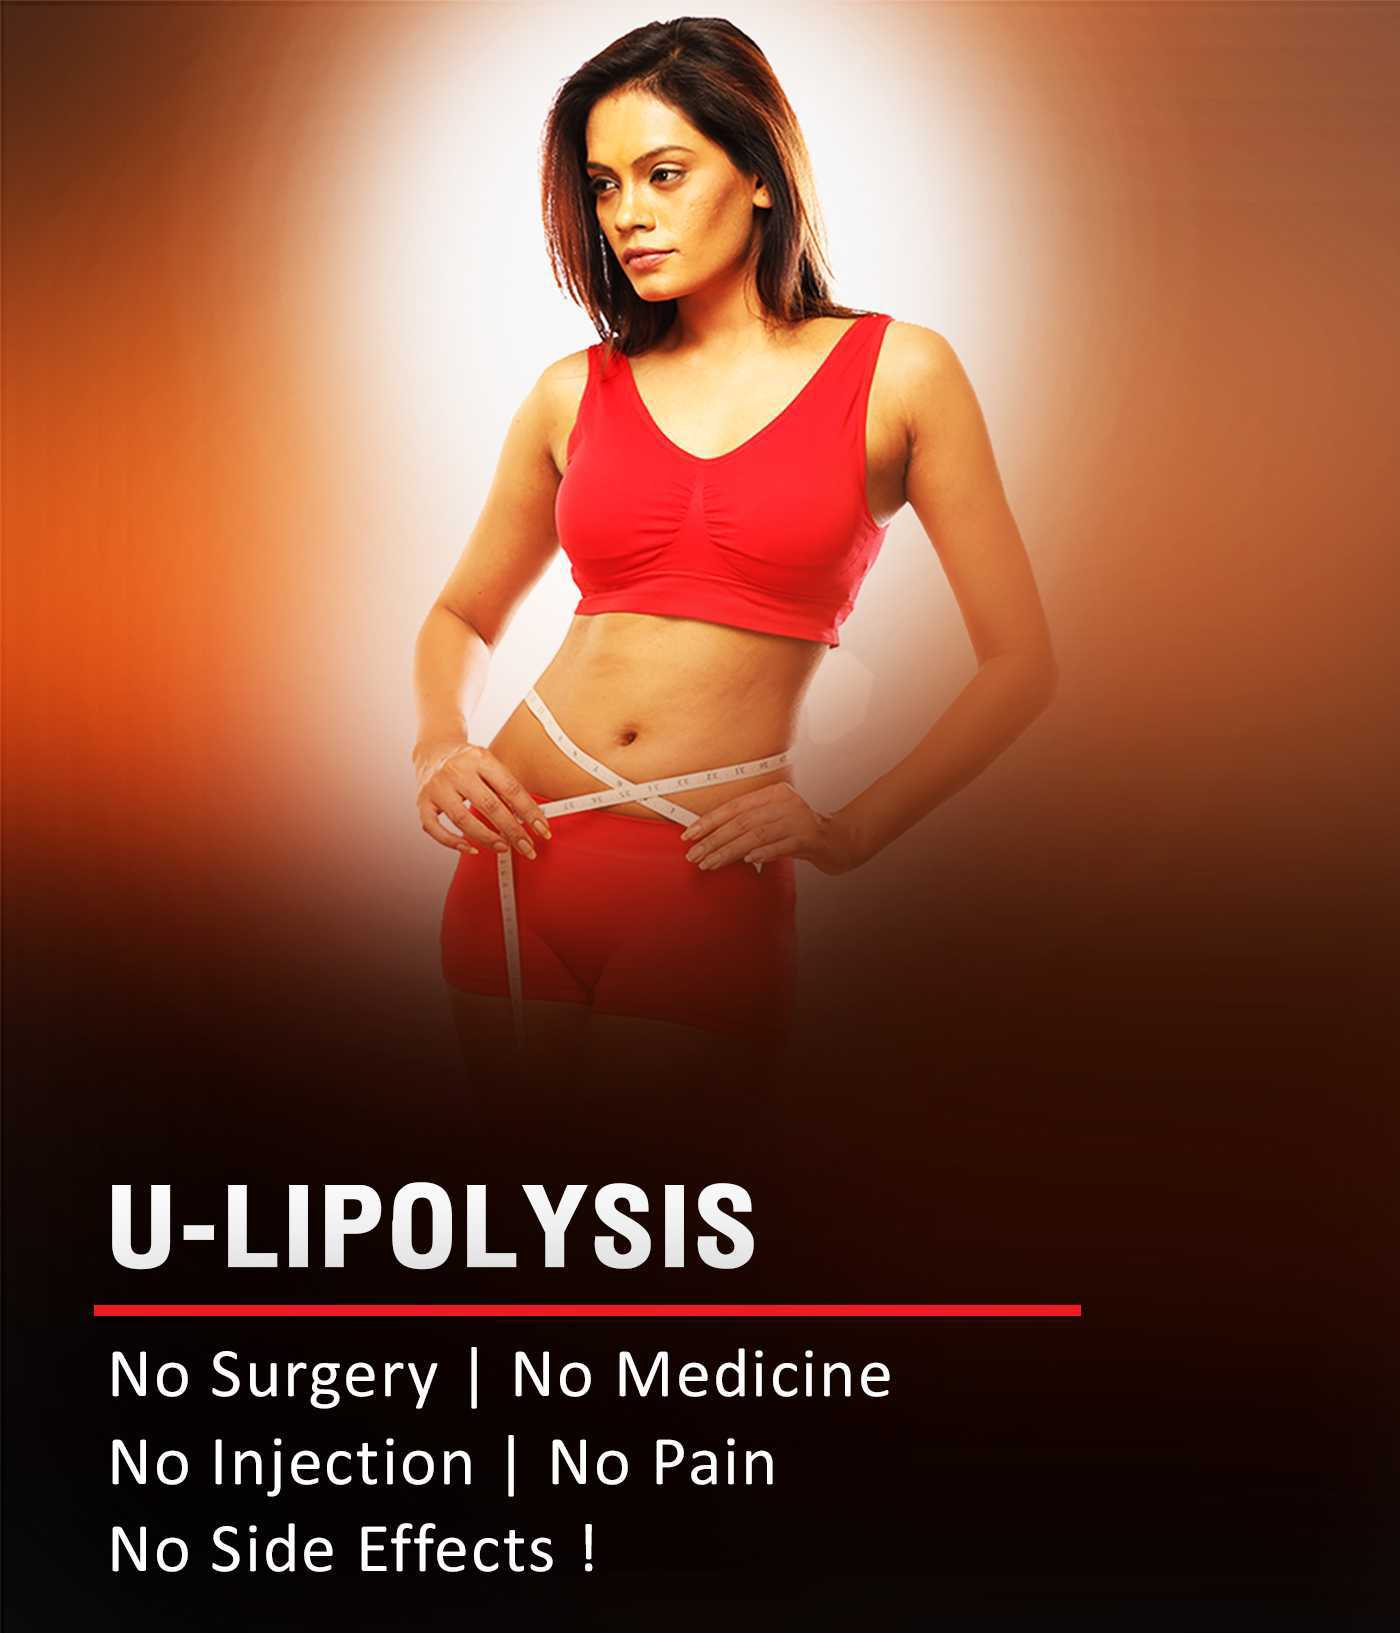 weight loss clinic in mumbai U Lipolysis how to reduce tummy tuck shape u clinic mulund u lipo Shape U Clinic u lipolysis treatment in mumbai